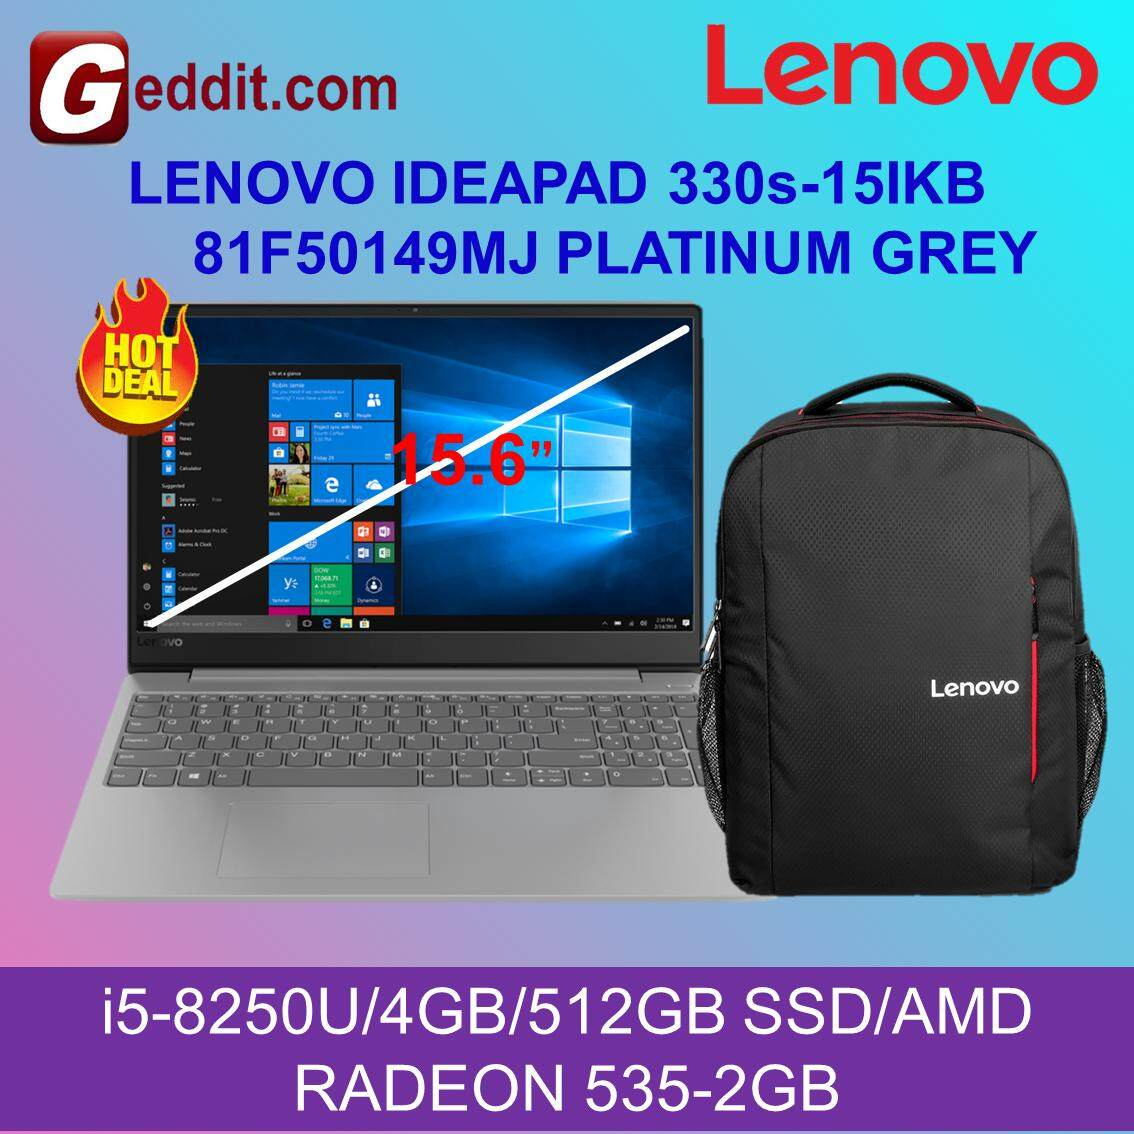 LENOVO IDEAPAD 330s-15IKB 81F50148MJ / 81F50149MJ NOTEBOOK ( i5-8250U,4GB,512GB SSD,AMD RADEON 535-2GB,WIN10 HOME ) FREE BACKPACK Malaysia